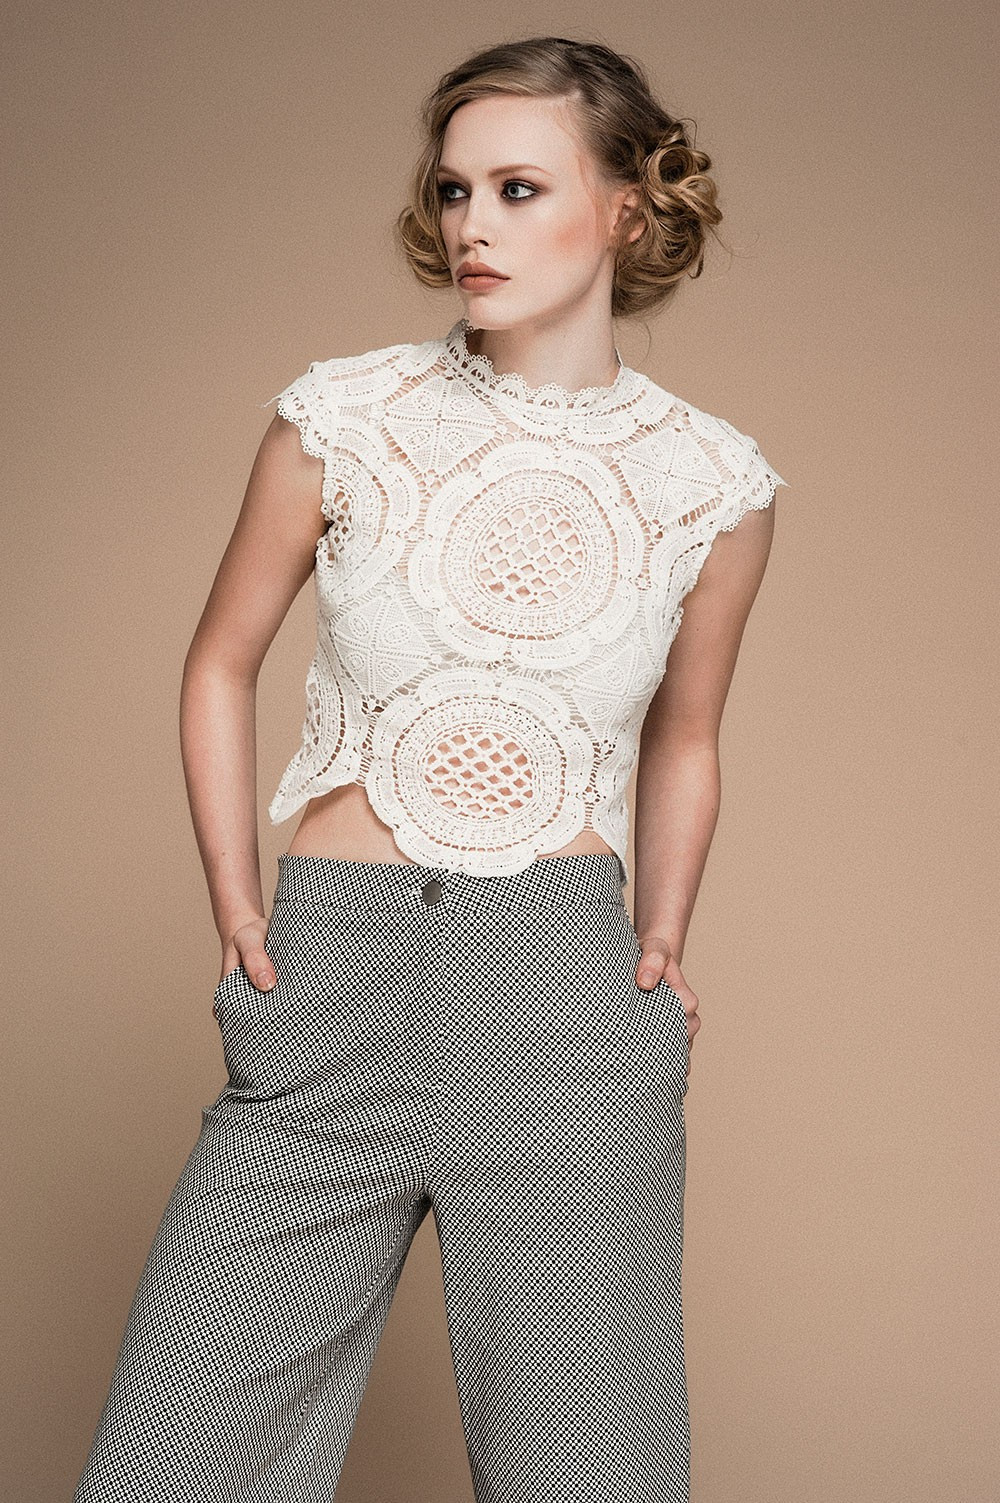 White Crochet Crop tops Elegant Glamorous Lousie Crochet Crop top In White Of Gorgeous 46 Pics White Crochet Crop tops